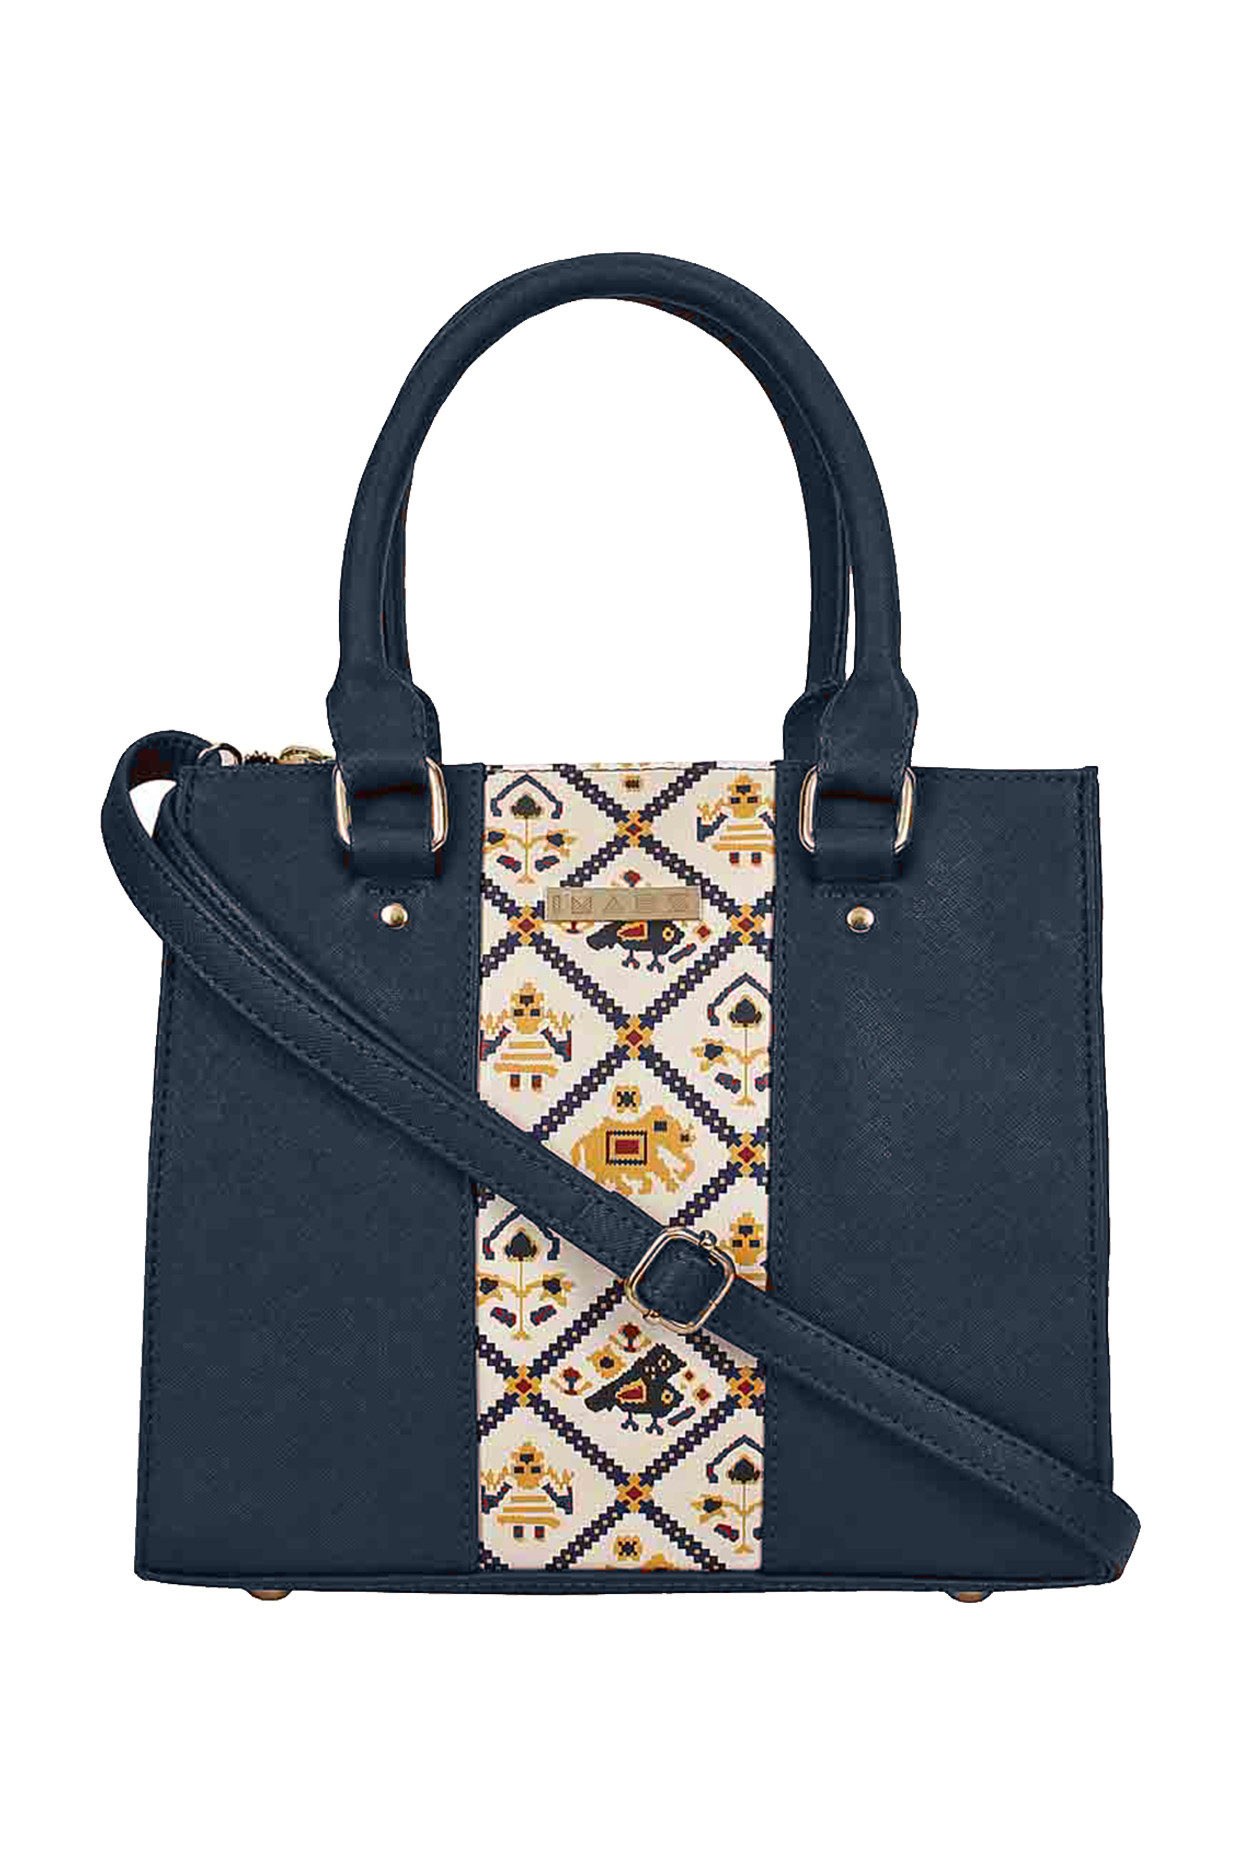 Blue Satchel With Adjustable Strap by Imars